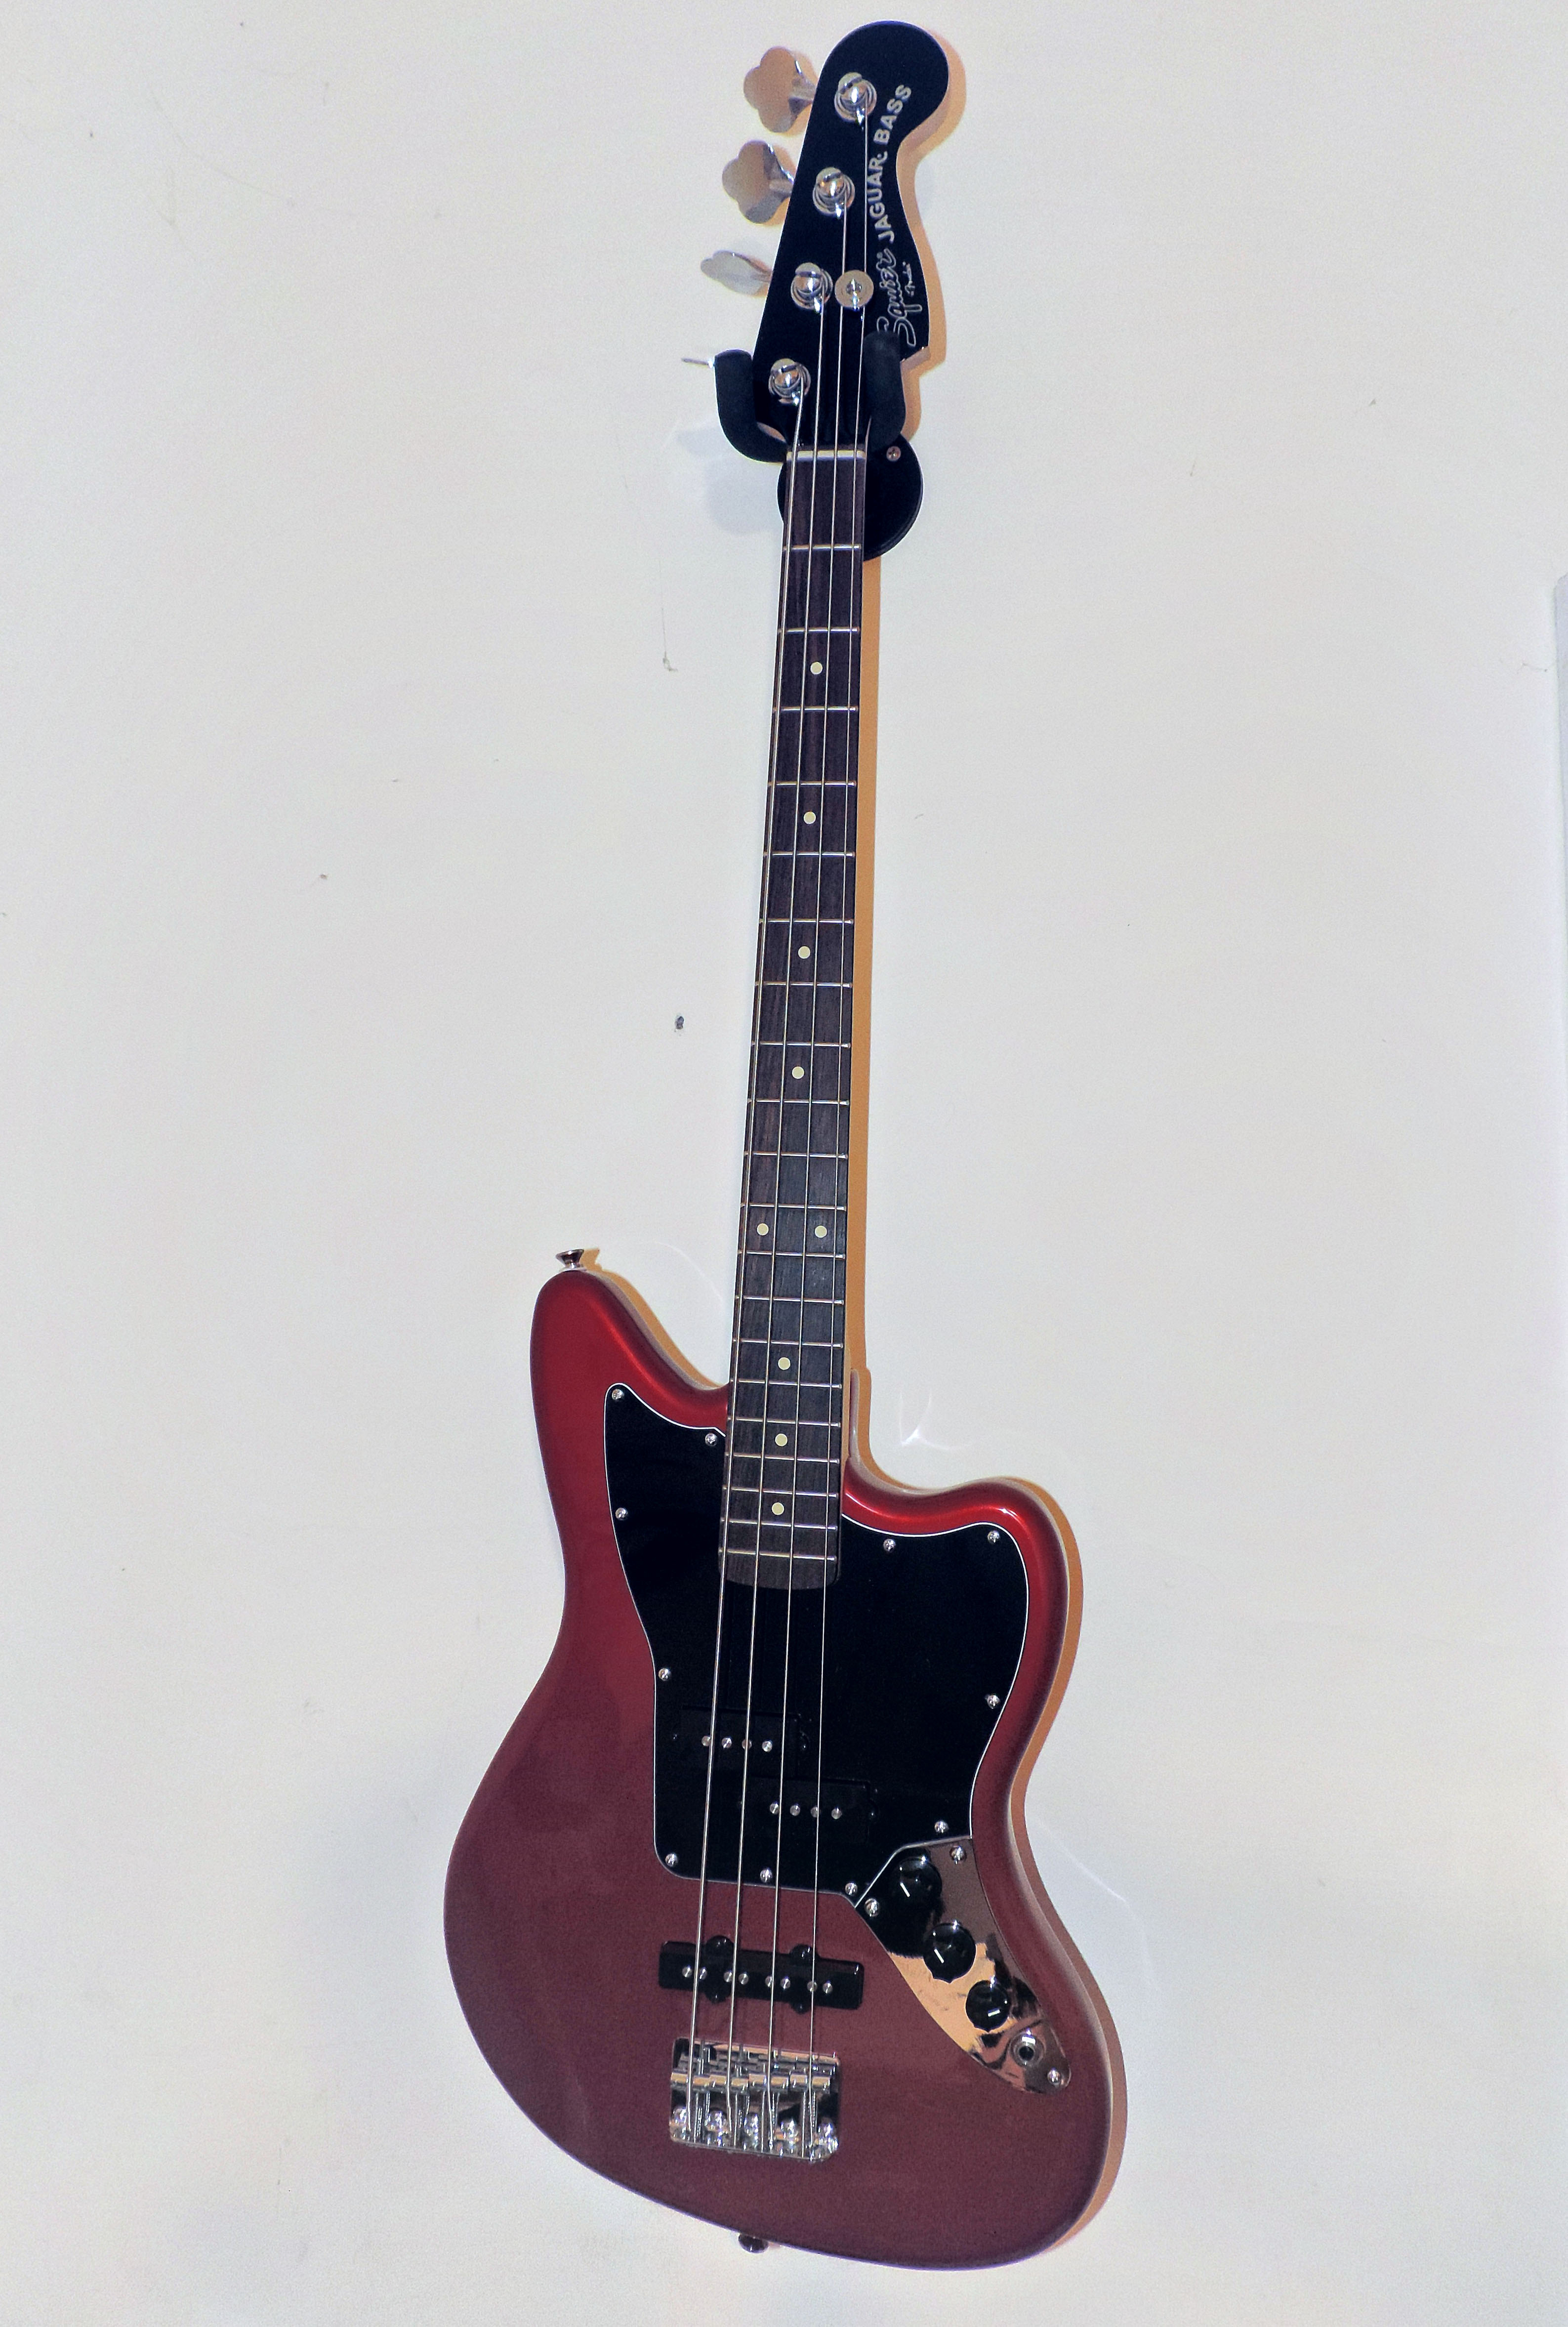 Fender Squier Jaguar Vintage Modern Short Scale Bass